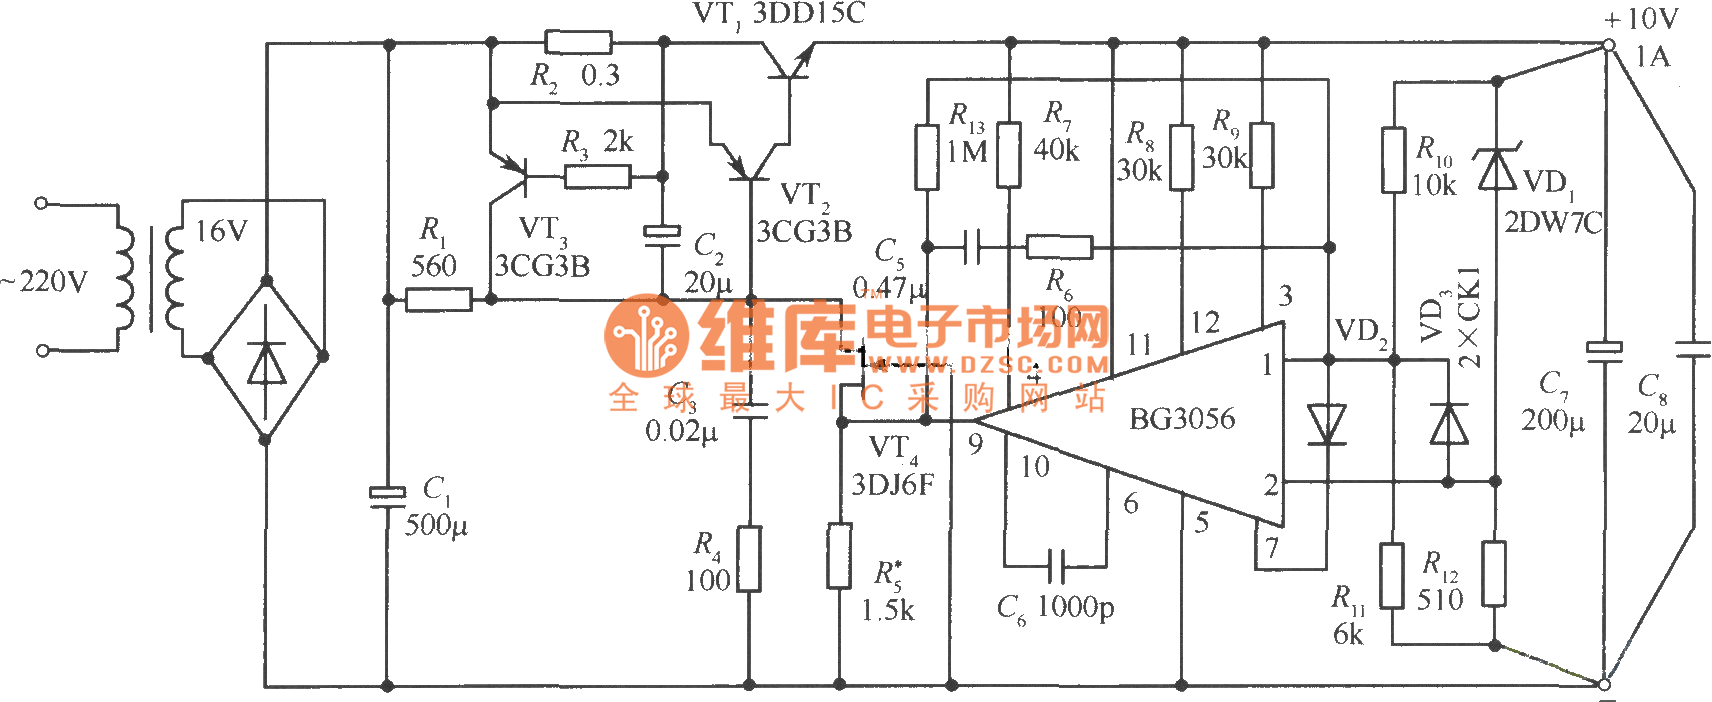 Power Pack Wiring Diagram 0 10v Reinvent Your 10vdc 1a Precision Regulated Supply Circuit Rh Seekic Com Pulse 4 20ma